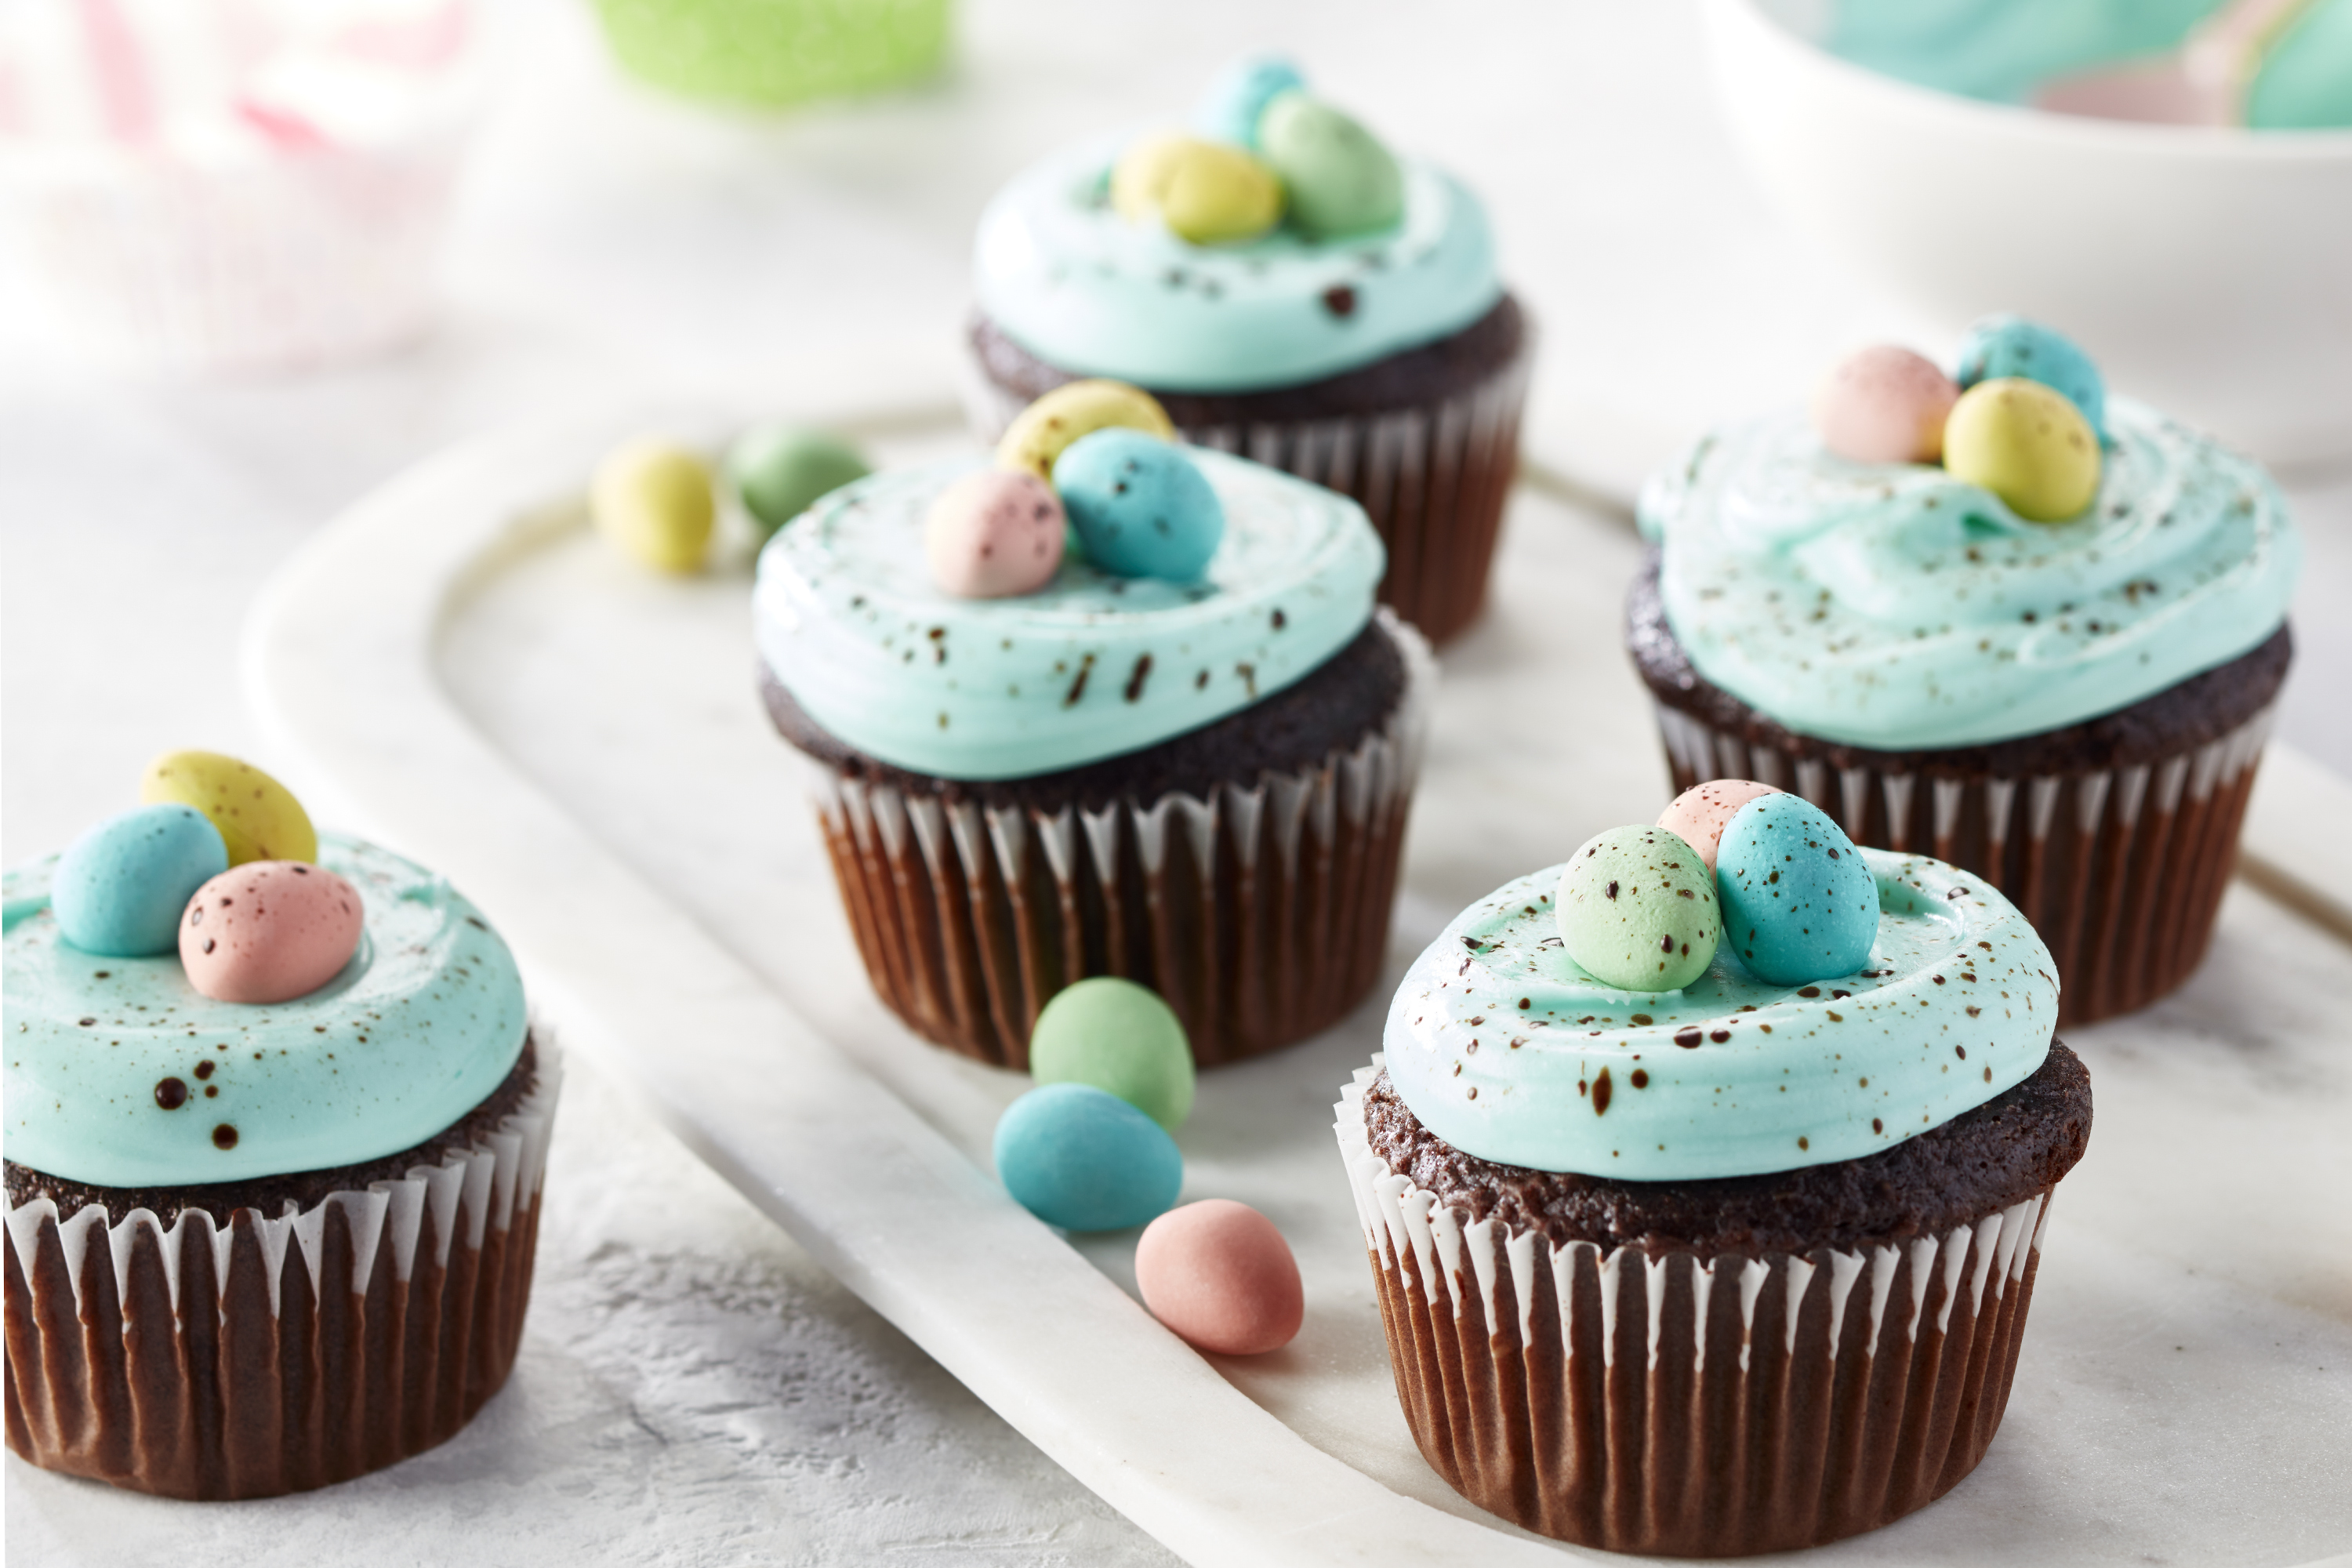 Easter Egg Speckled Cupcakes Image 1